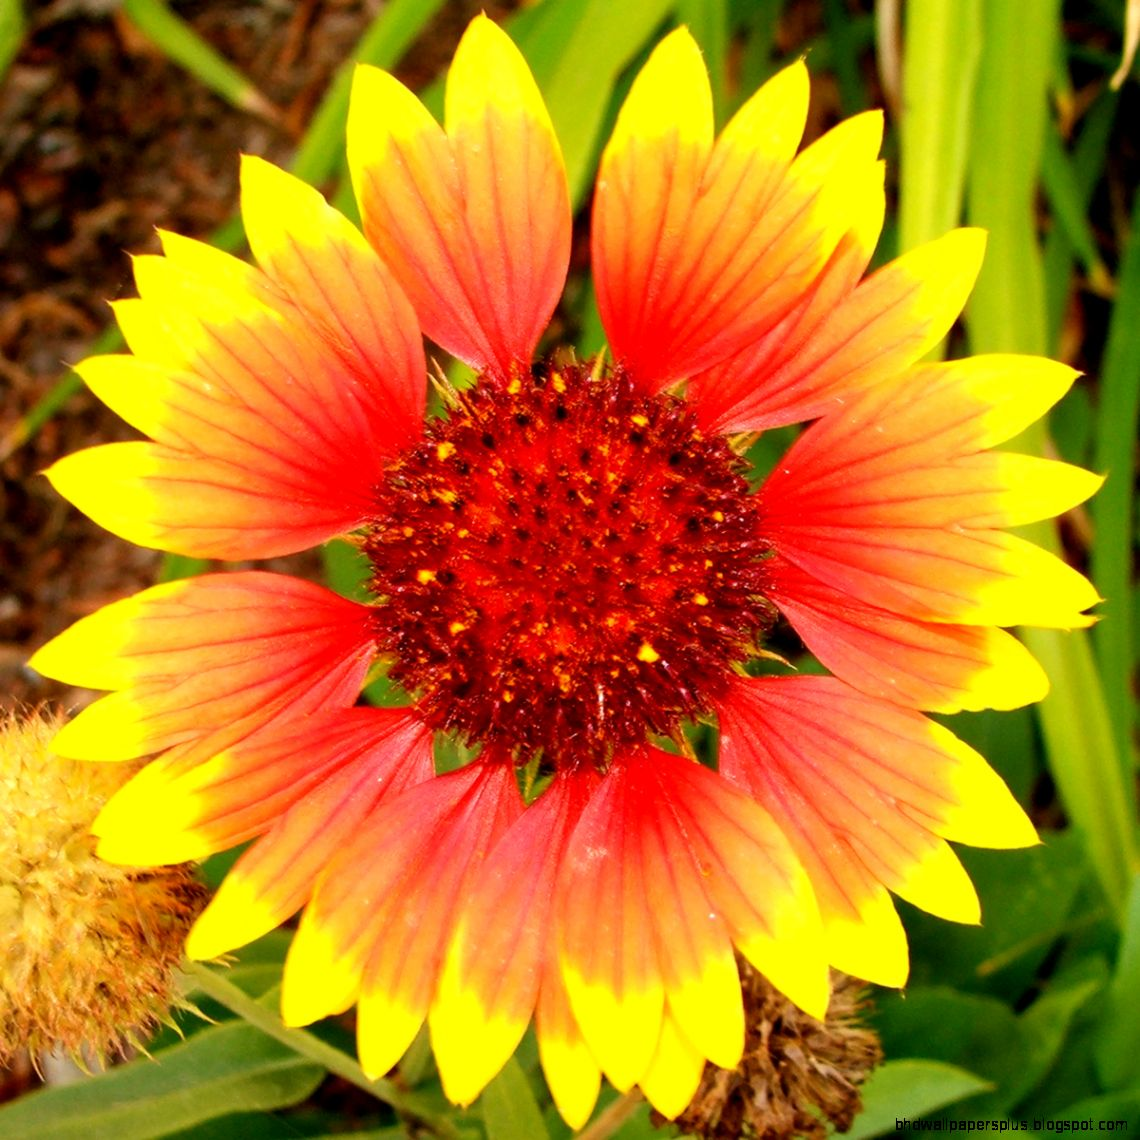 FileYellow and Orange Flower   Wikipedia the free encyclopedia